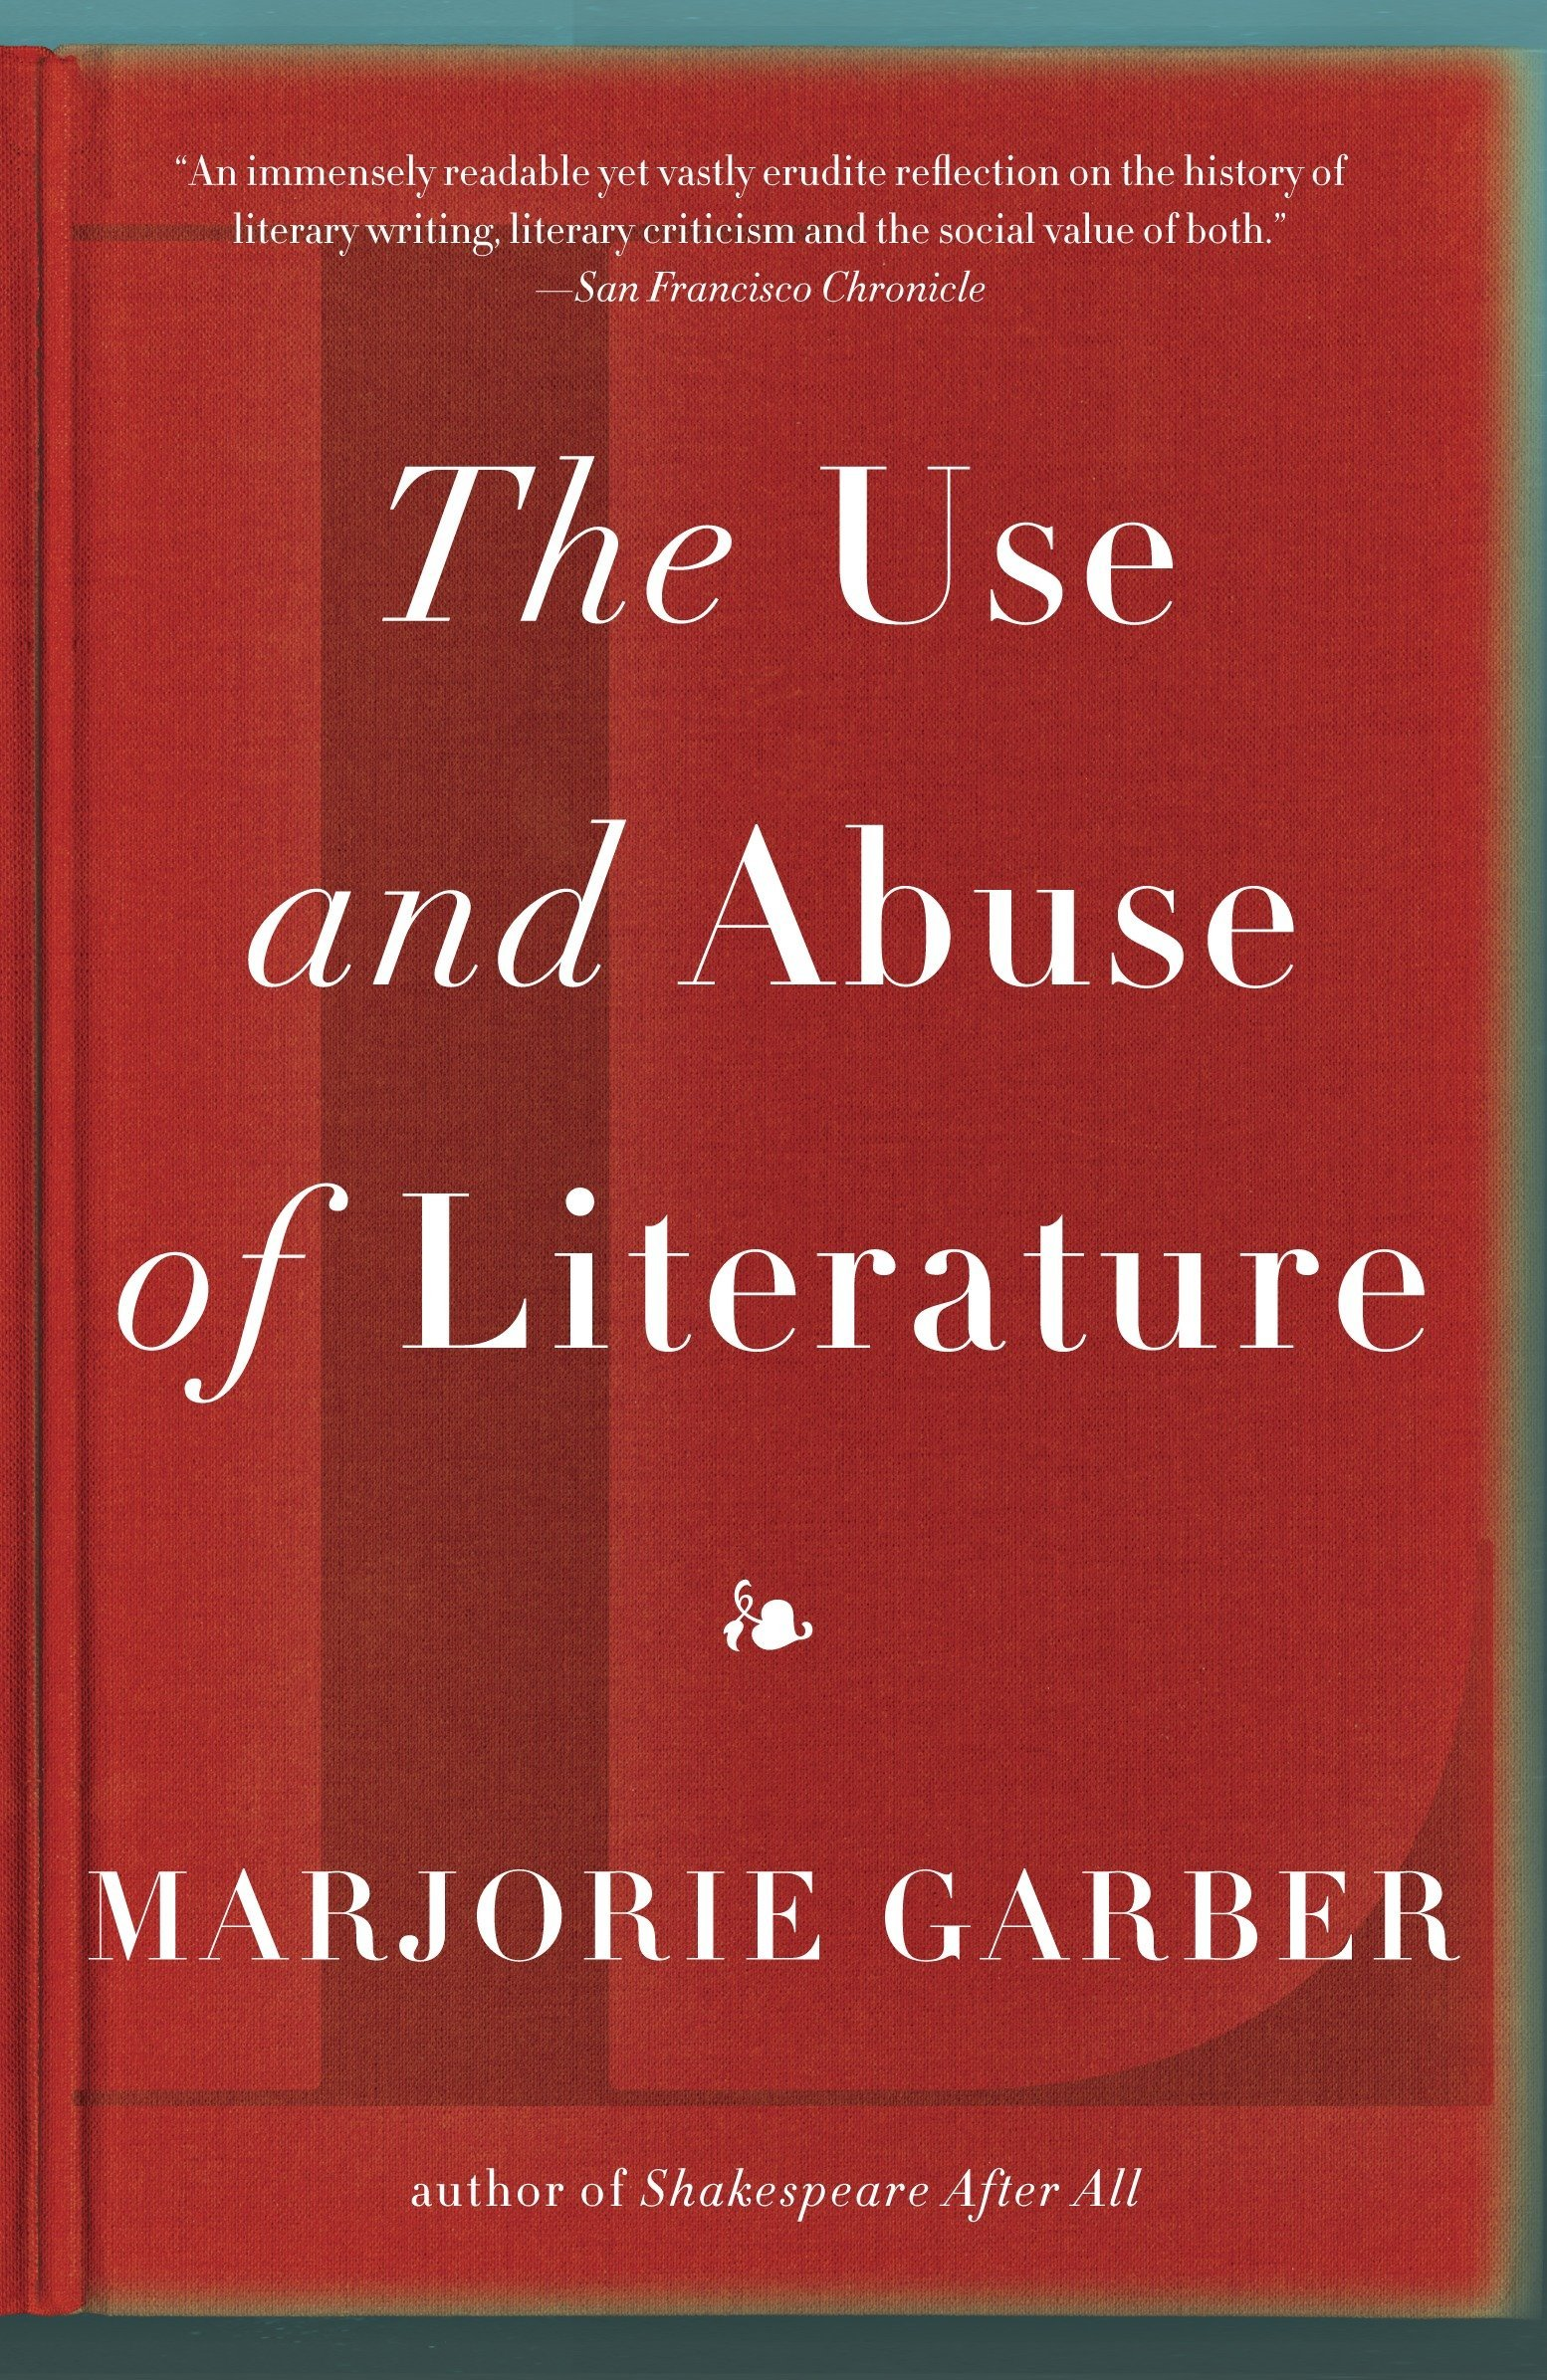 Read Online The Use and Abuse of Literature Text fb2 book